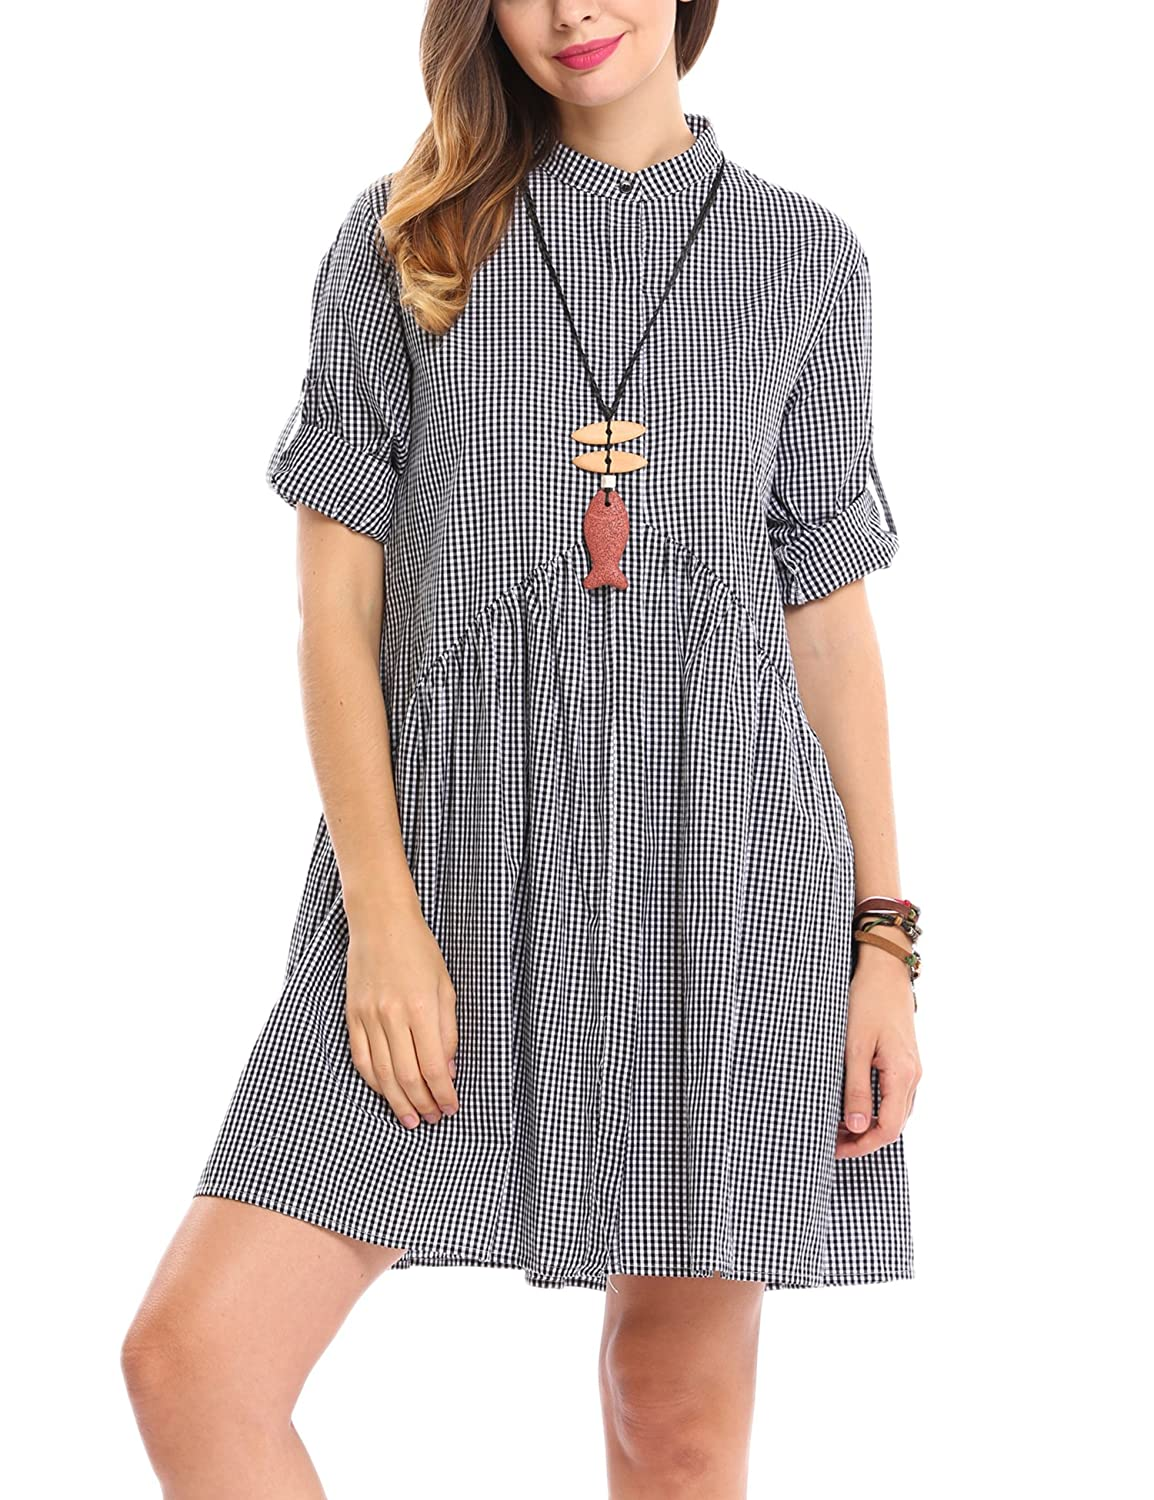 ACEVOG Women's Long Sleeve Plaid Button Down A-Line Shirt Dress